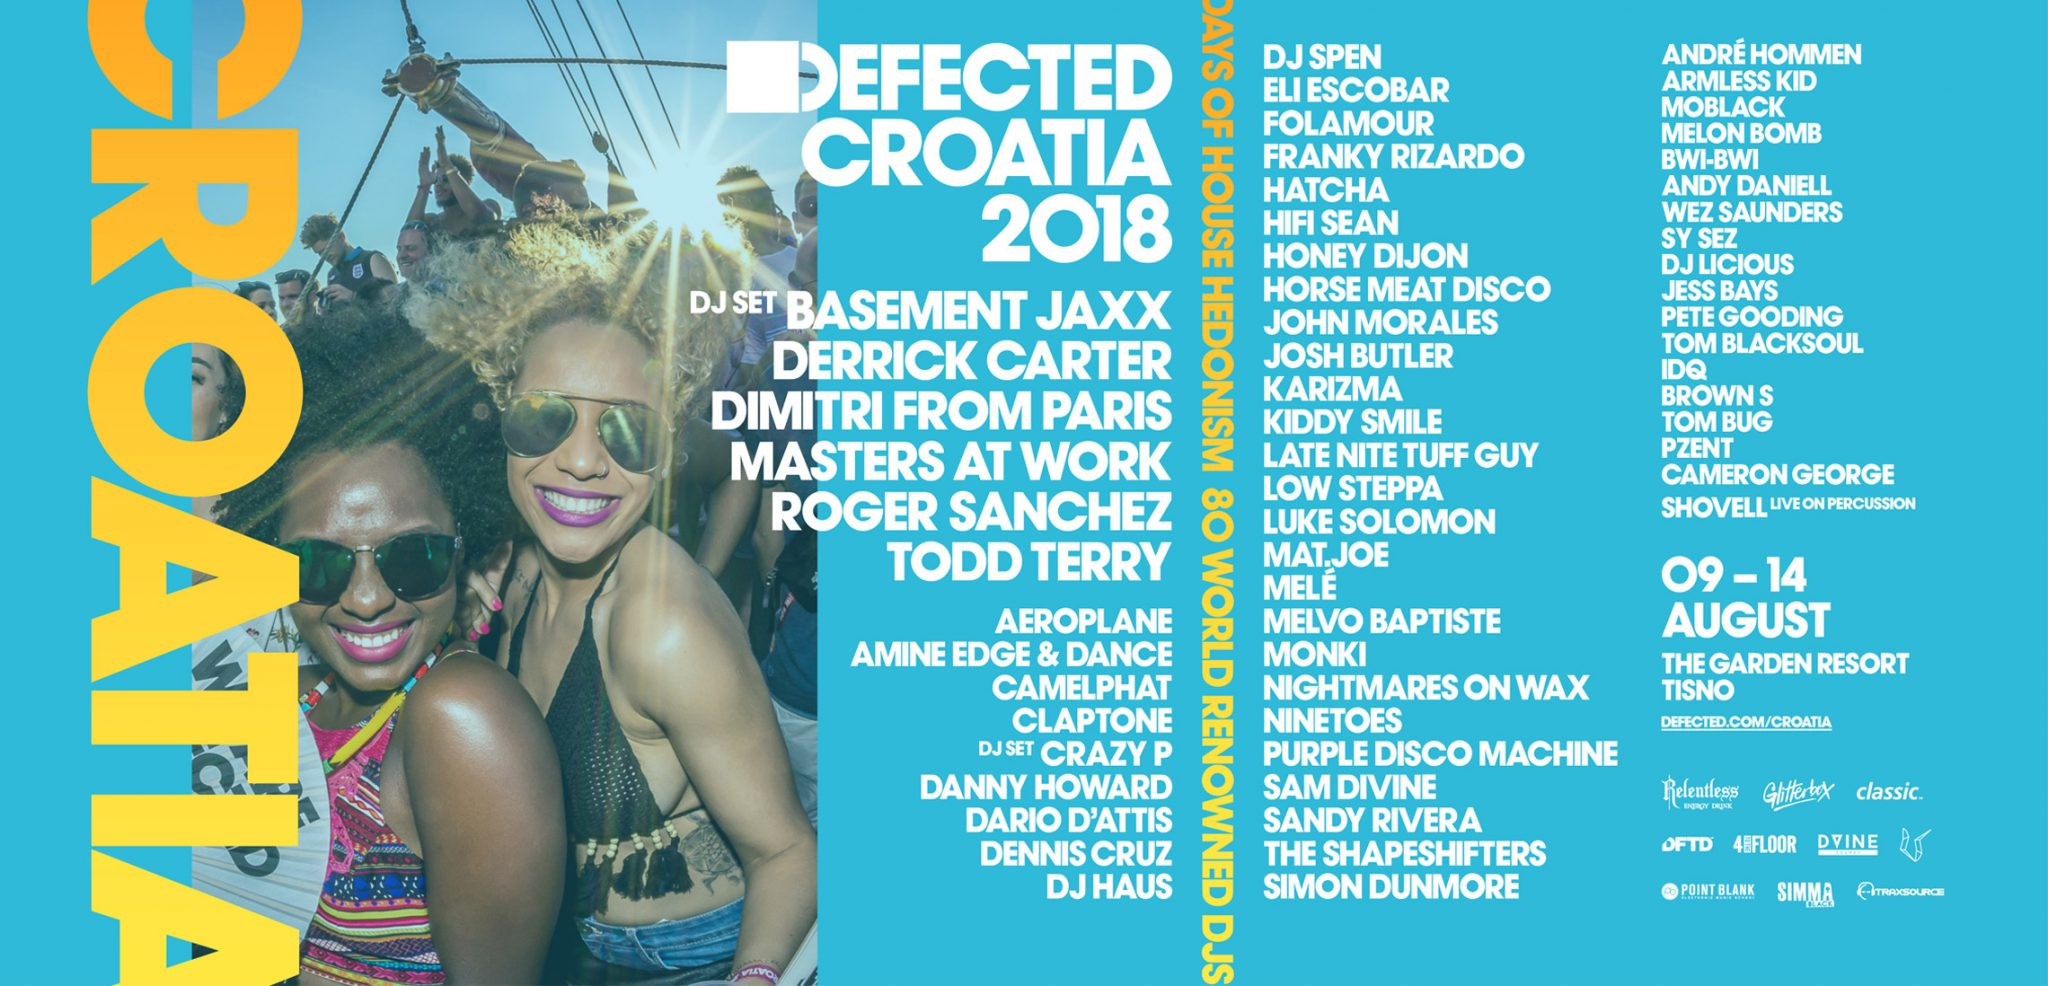 Defected Croatia 2018 - Phase 1 line up inc Basement Jaxx, Camelphat, Derrick Carter and more